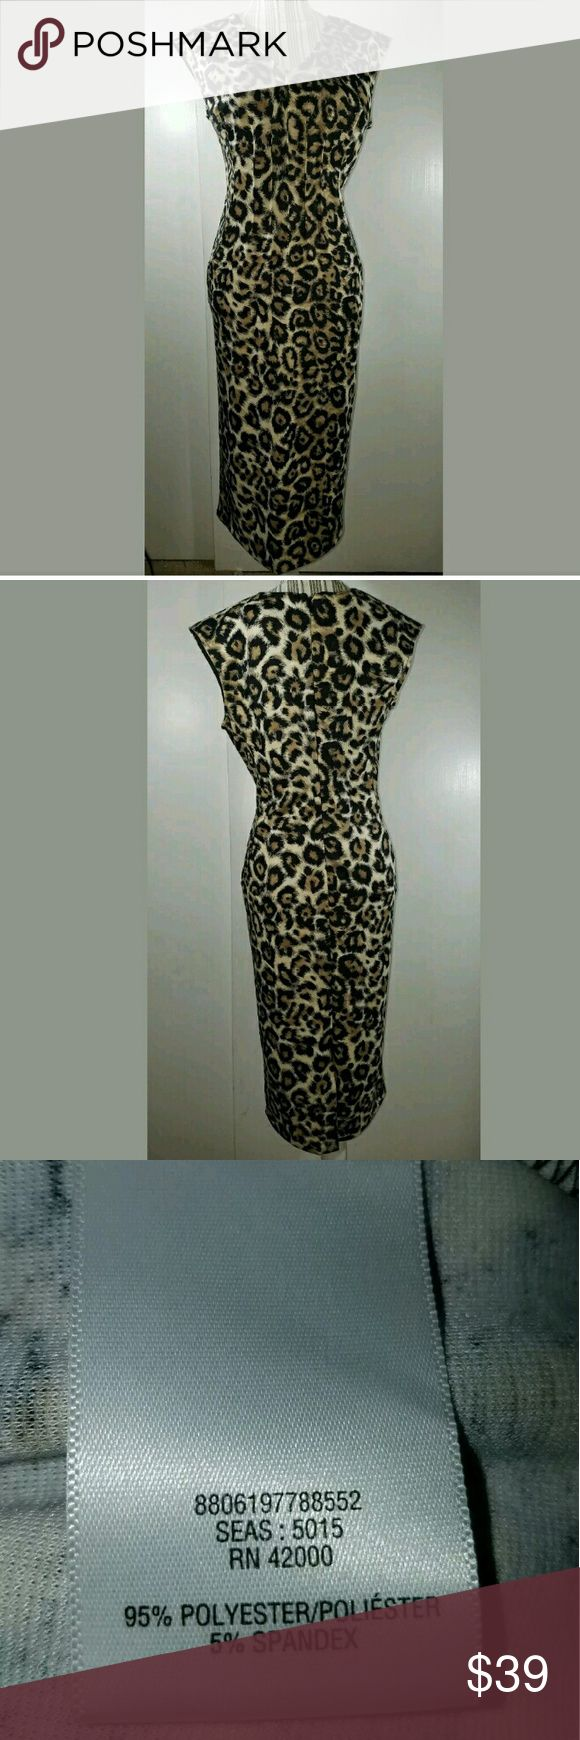 Jaclyn Smith Collection Midi Animal Print Dress Women's Jaclyn Smith Collection Midi Animal Print Cap Sleeve Dress Medium  Excellent used condition.  No holes or stains.  18.5 inches pit to pit. 44.5 inches long.  LB Jaclyn Smith Dresses Midi